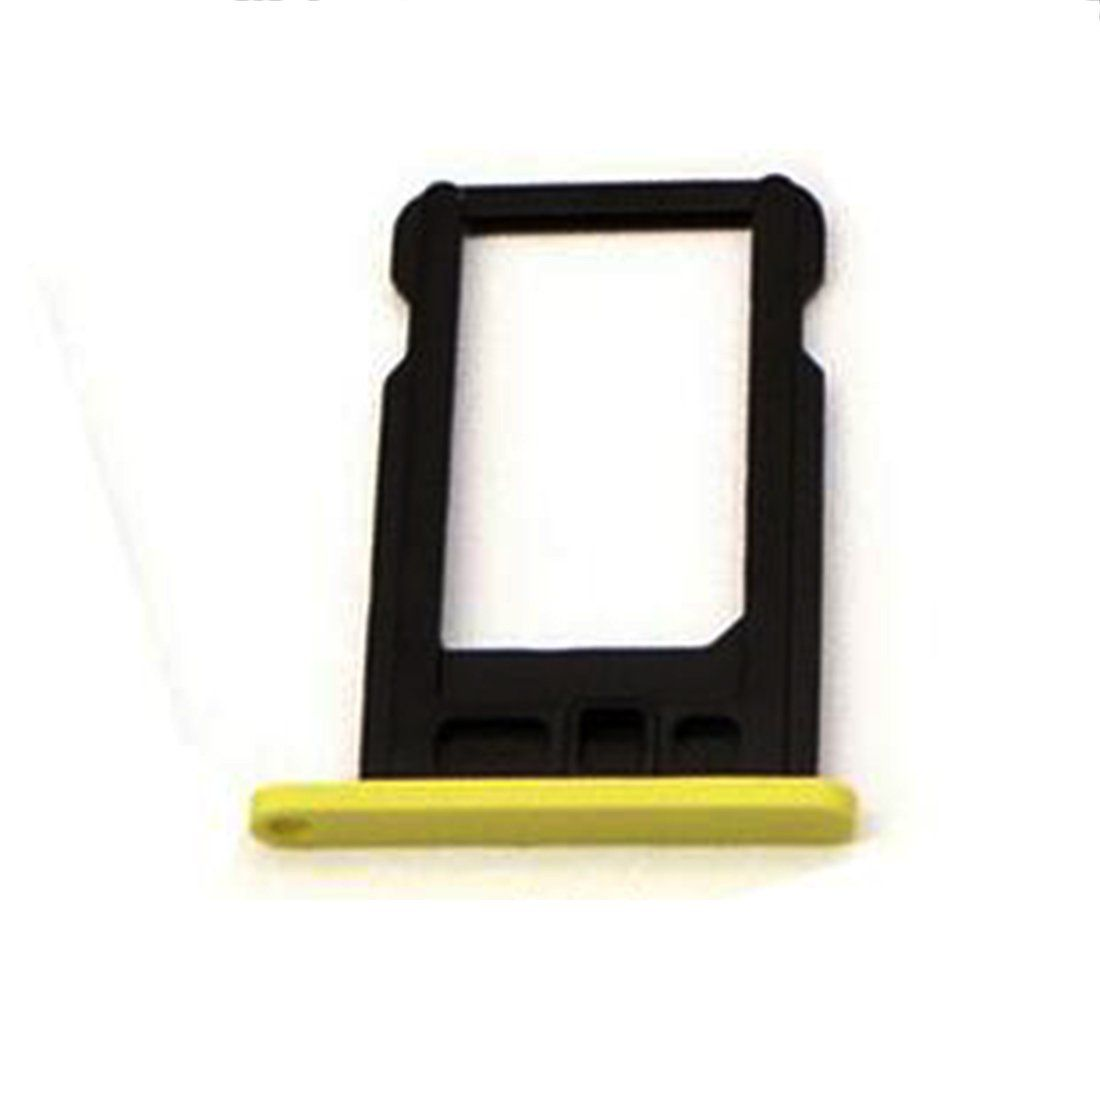 Sim card tray holder slot replacement adapter for iphone